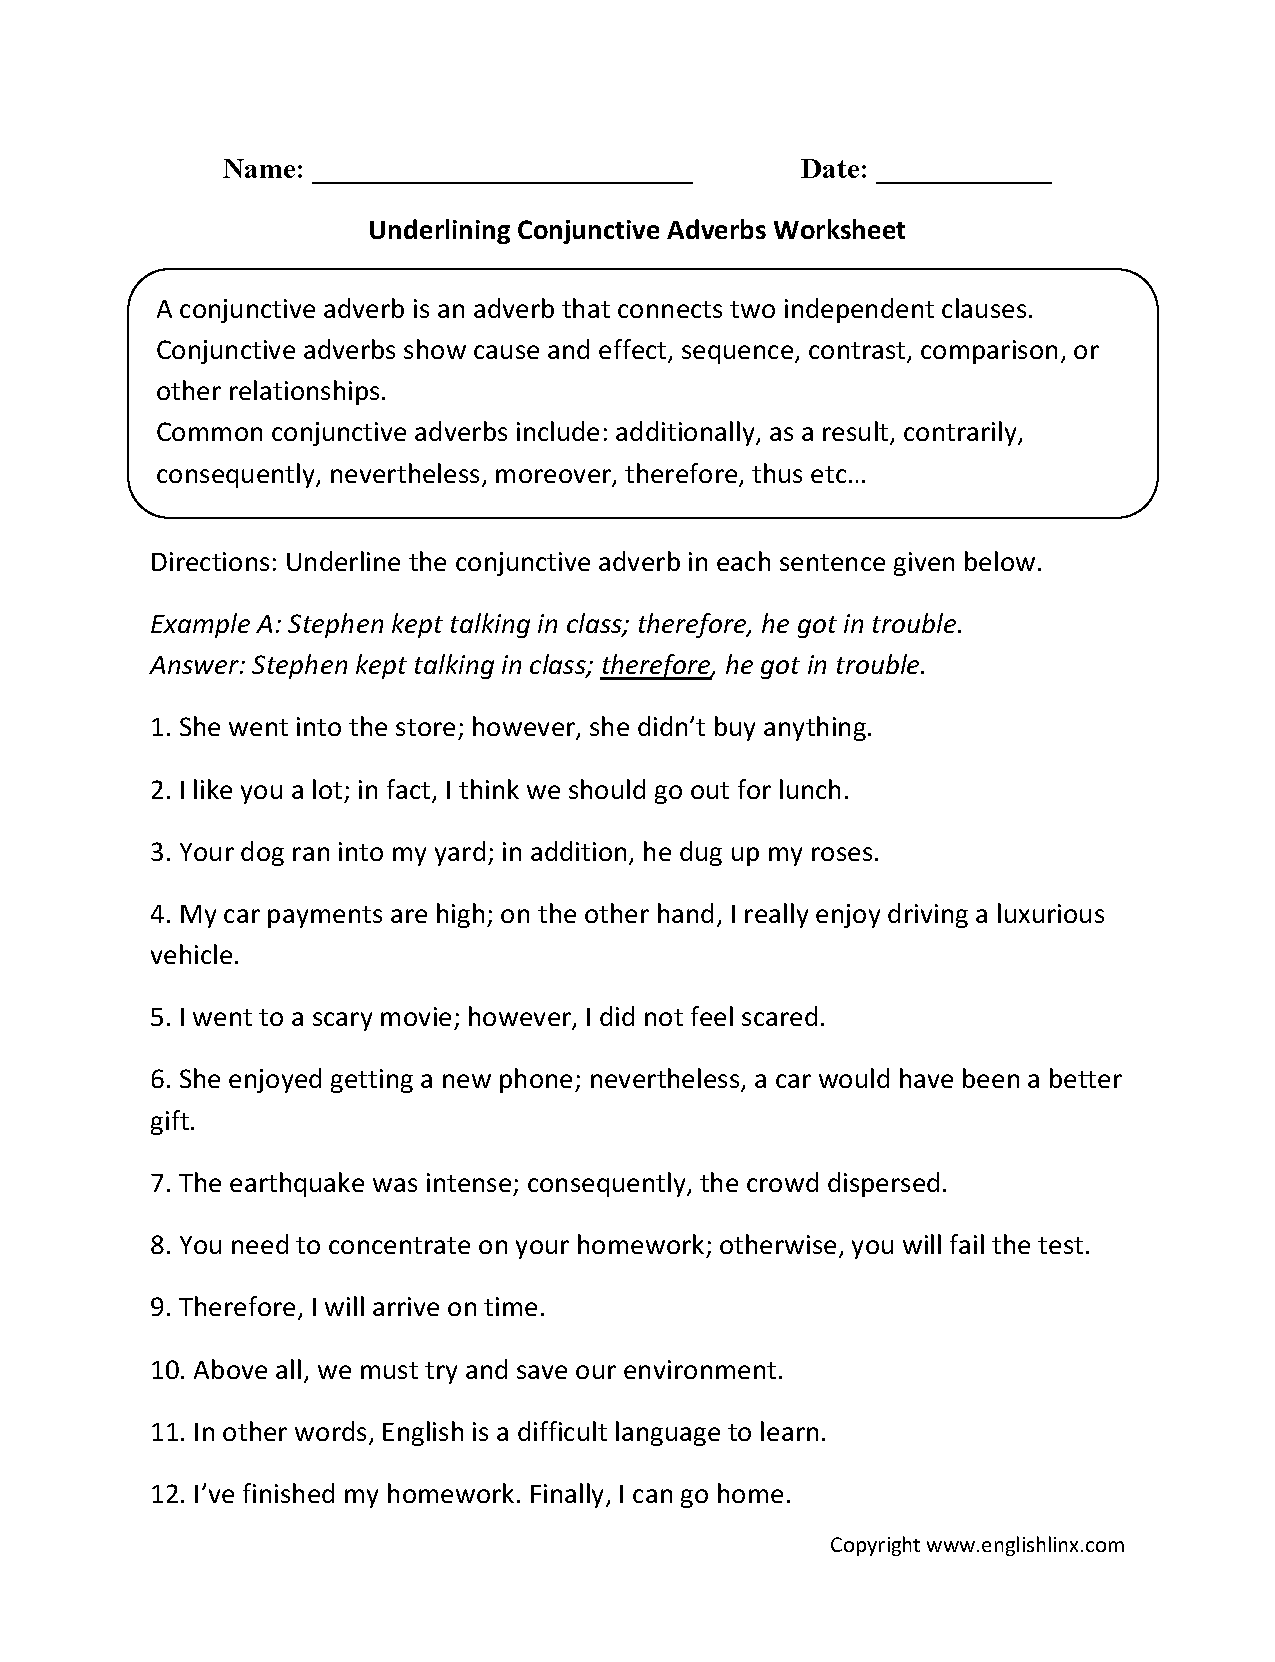 Weirdmailus  Stunning Englishlinxcom  Conjunctions Worksheets With Excellent Worksheet With Endearing Text Features Worksheets Th Grade Also Tion Sion Worksheets In Addition Word Problems Addition And Subtraction Worksheets And Hands On Equation Worksheets As Well As Kwl Chart Worksheet Additionally Math Worksheets Powers And Exponents From Englishlinxcom With Weirdmailus  Excellent Englishlinxcom  Conjunctions Worksheets With Endearing Worksheet And Stunning Text Features Worksheets Th Grade Also Tion Sion Worksheets In Addition Word Problems Addition And Subtraction Worksheets From Englishlinxcom